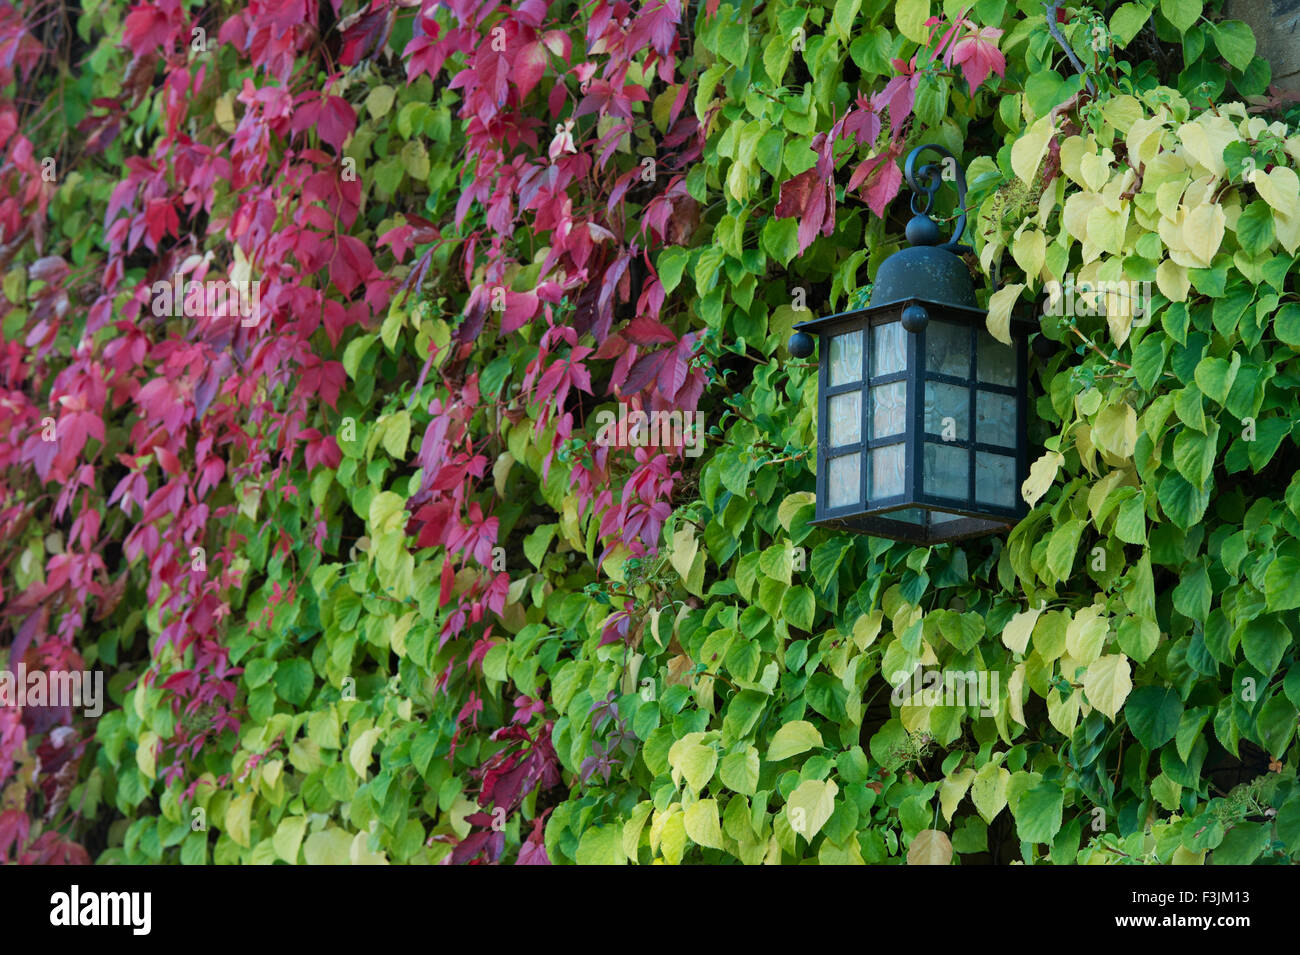 Outside lamp on a cotswold cottage surrounded by hydrangea petiolaris leaves. Cotswolds, England - Stock Image